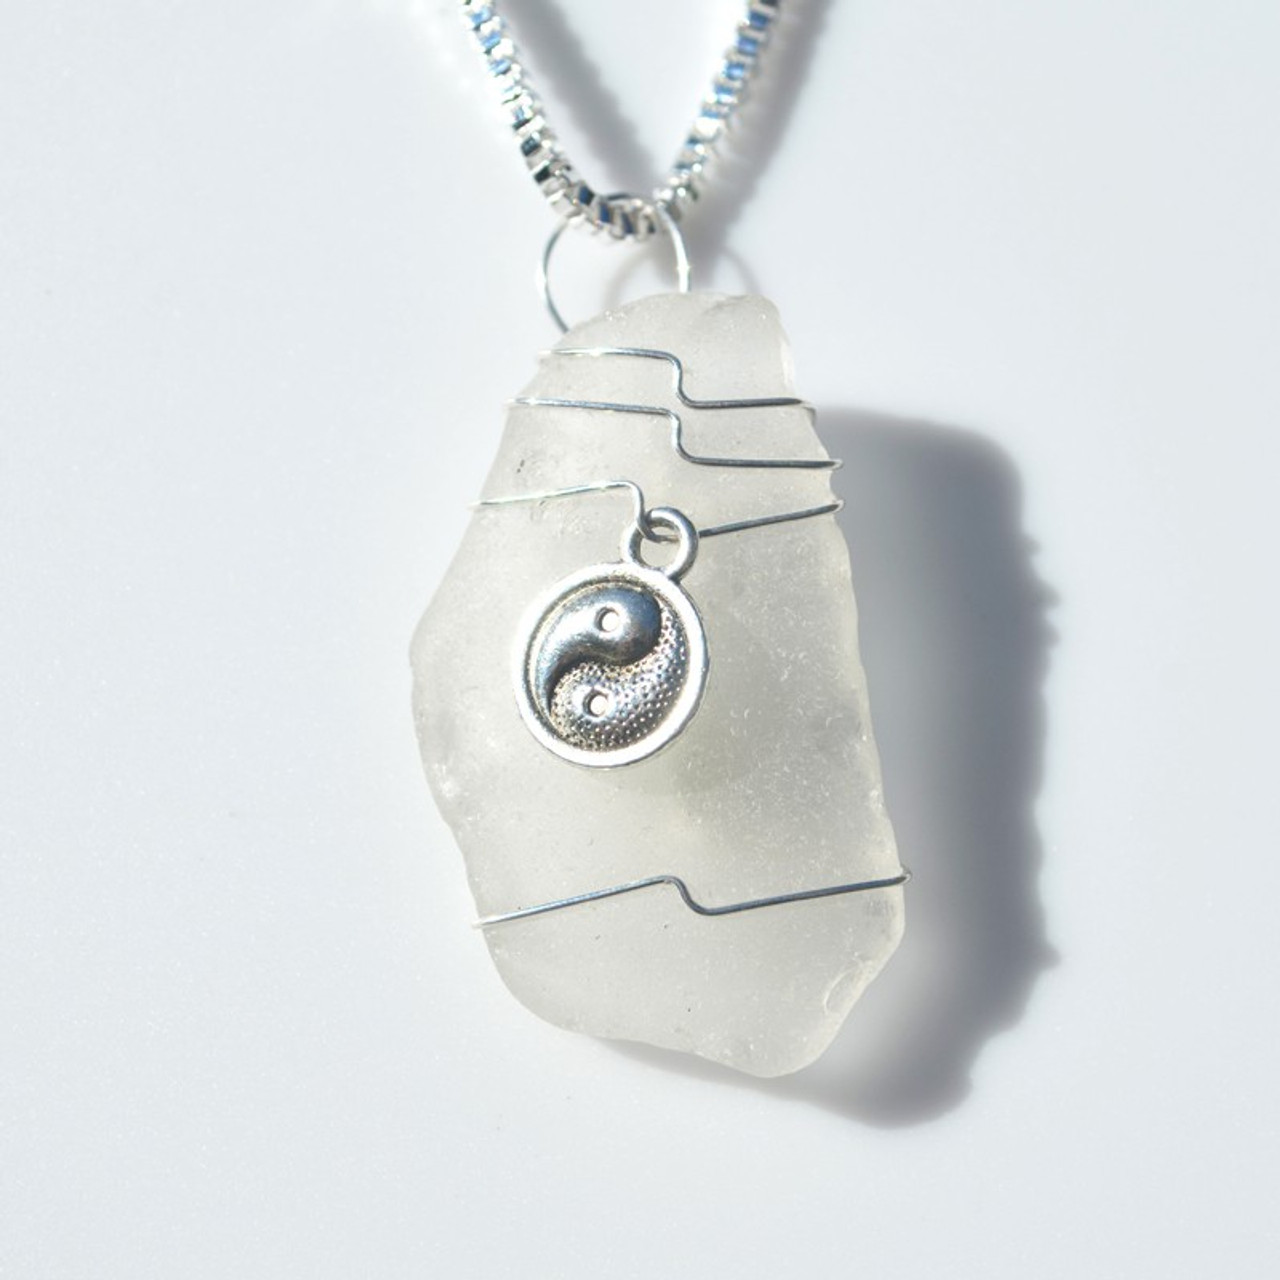 Yin Yang Pendant and Necklace